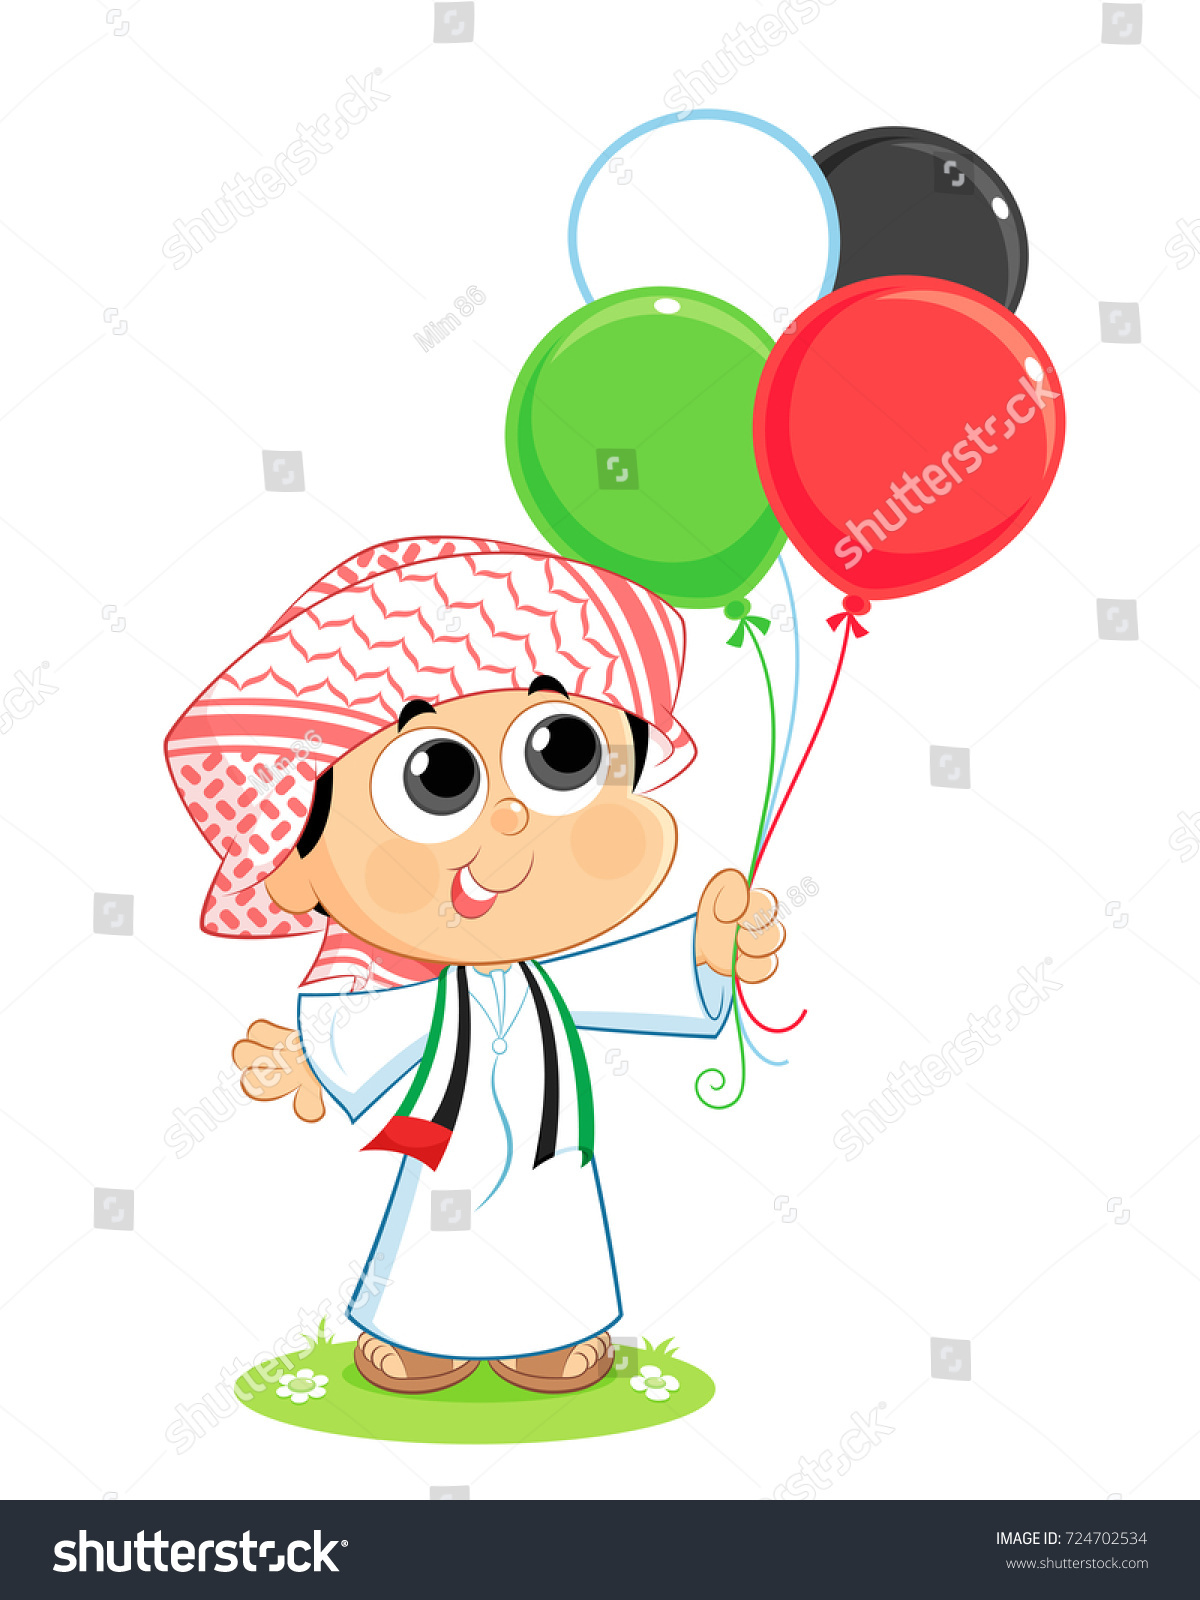 UAE Public Holidays 2018 Middle East  qppstudionet